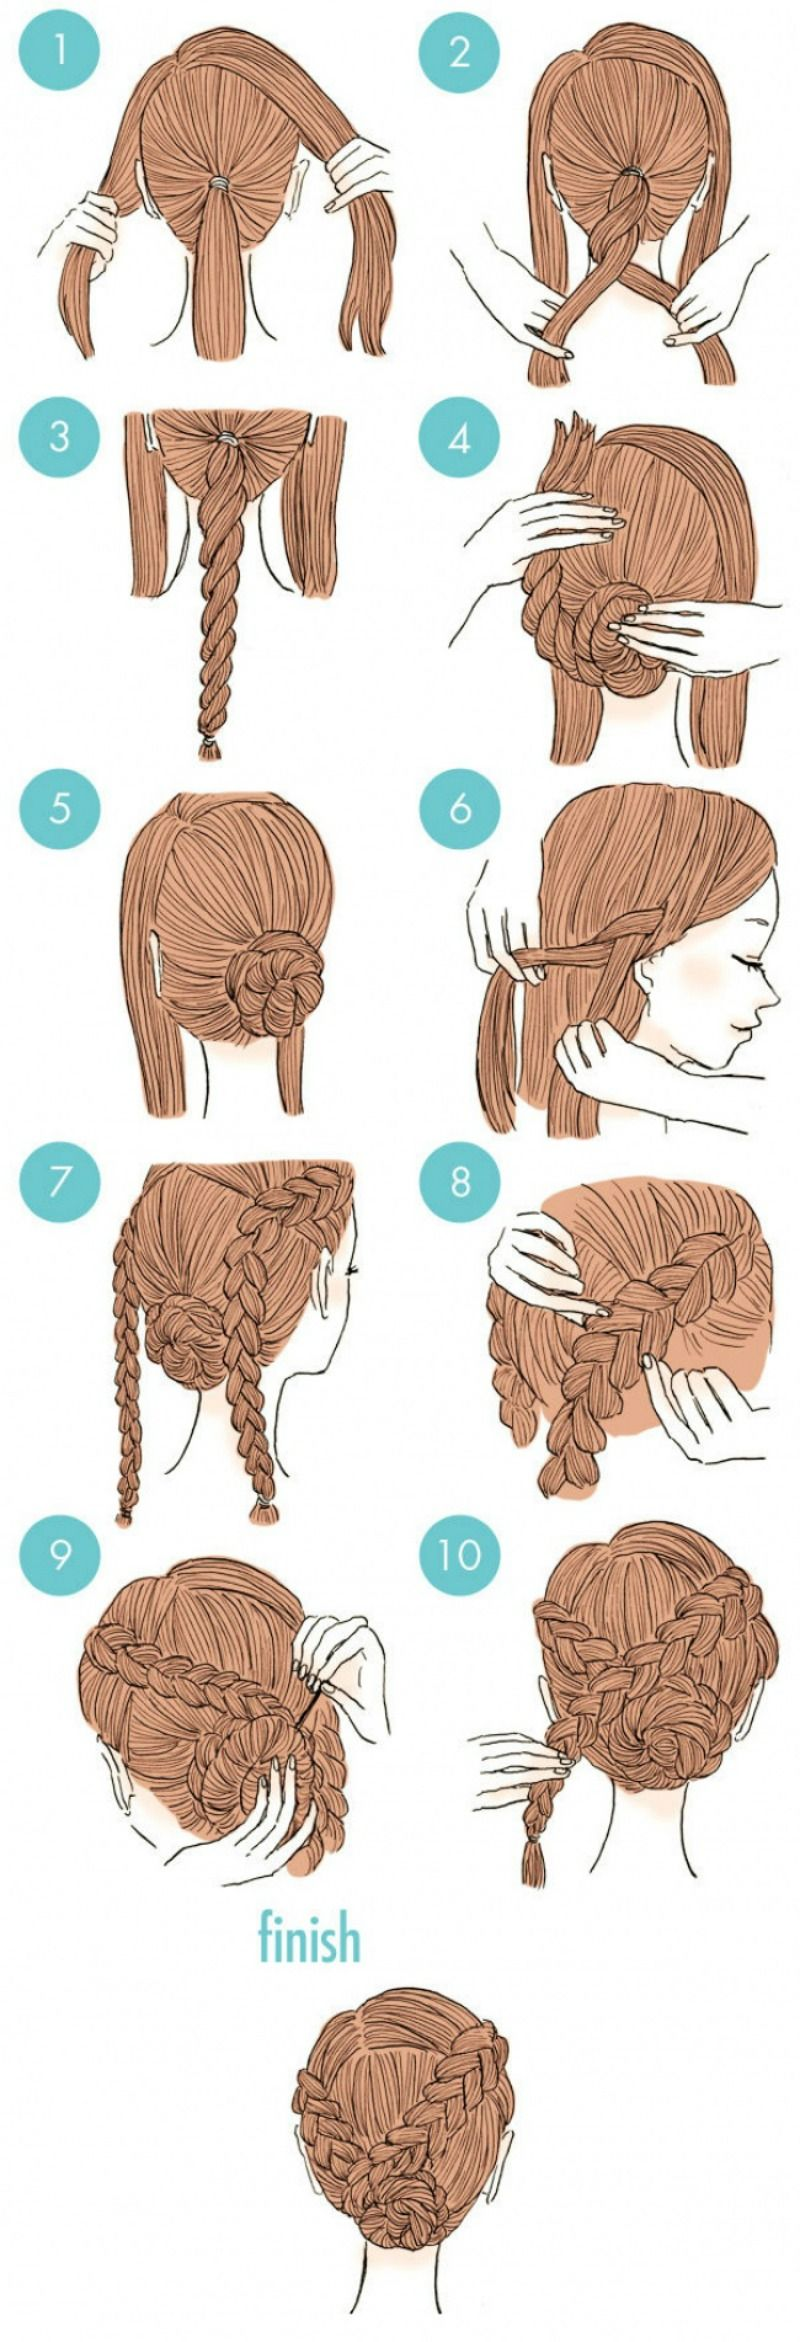 facilisimos peinados foto the girl pinterest hair style